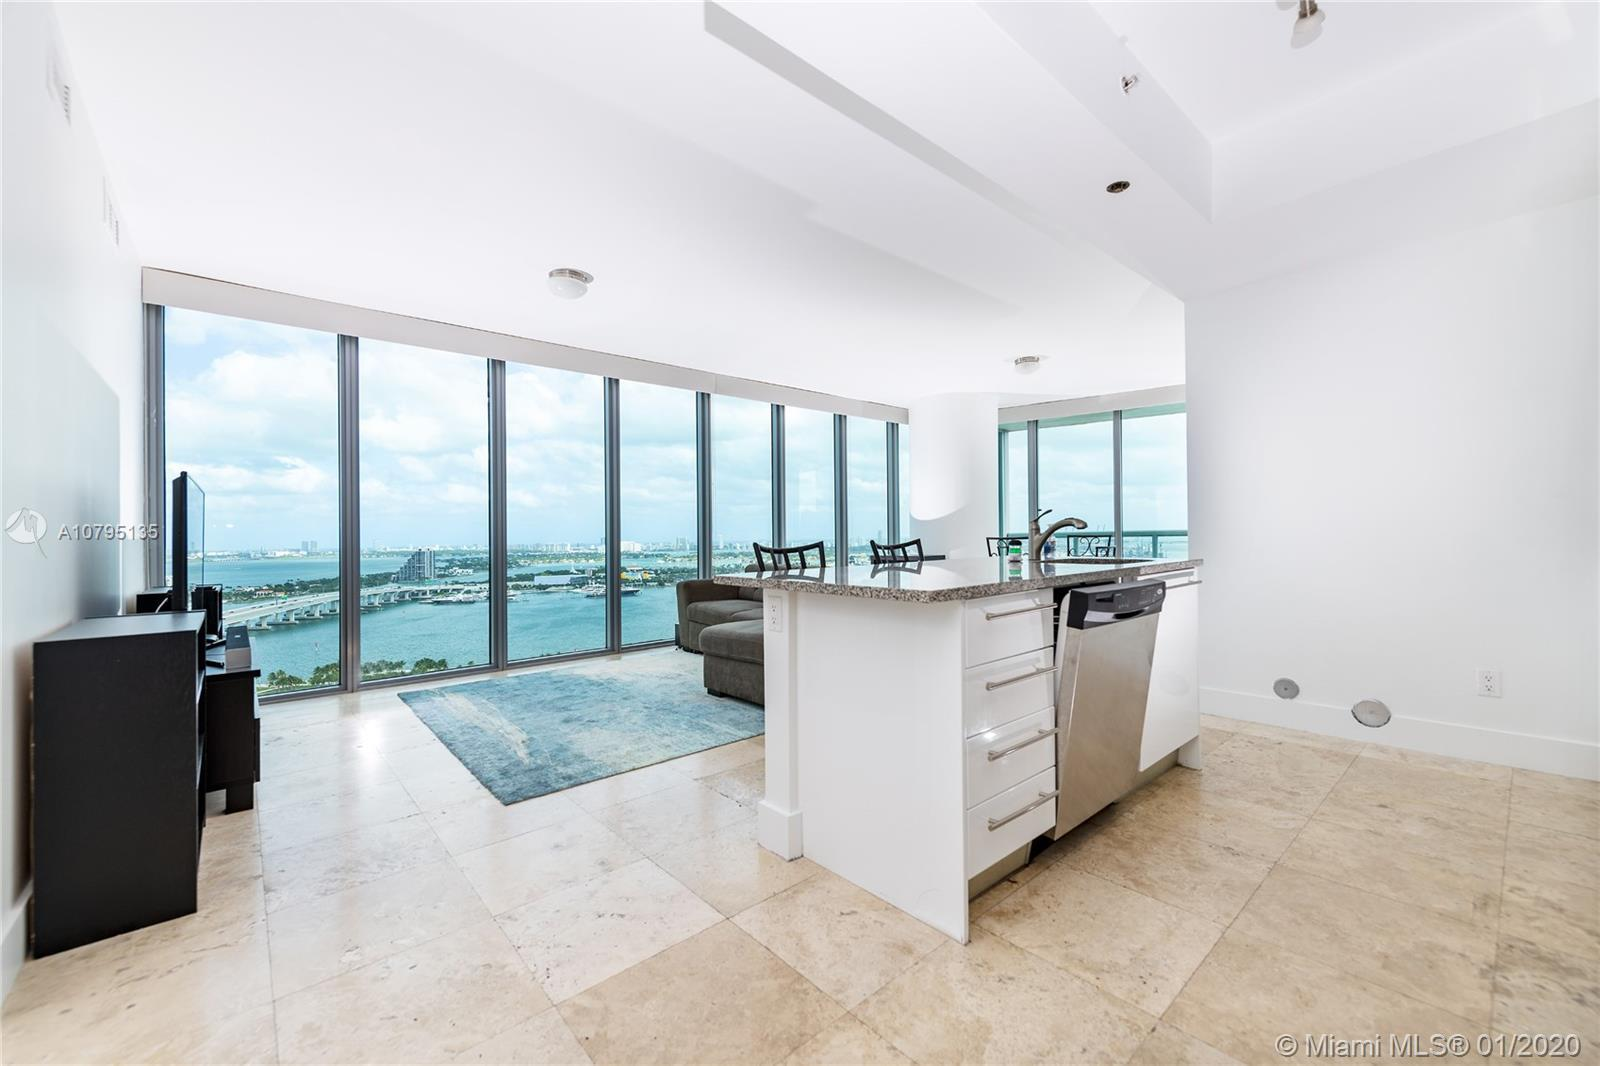 Best line in the building. Unobstructed gorgeous views of Biscayne Bay, Downtown Miami and the beach